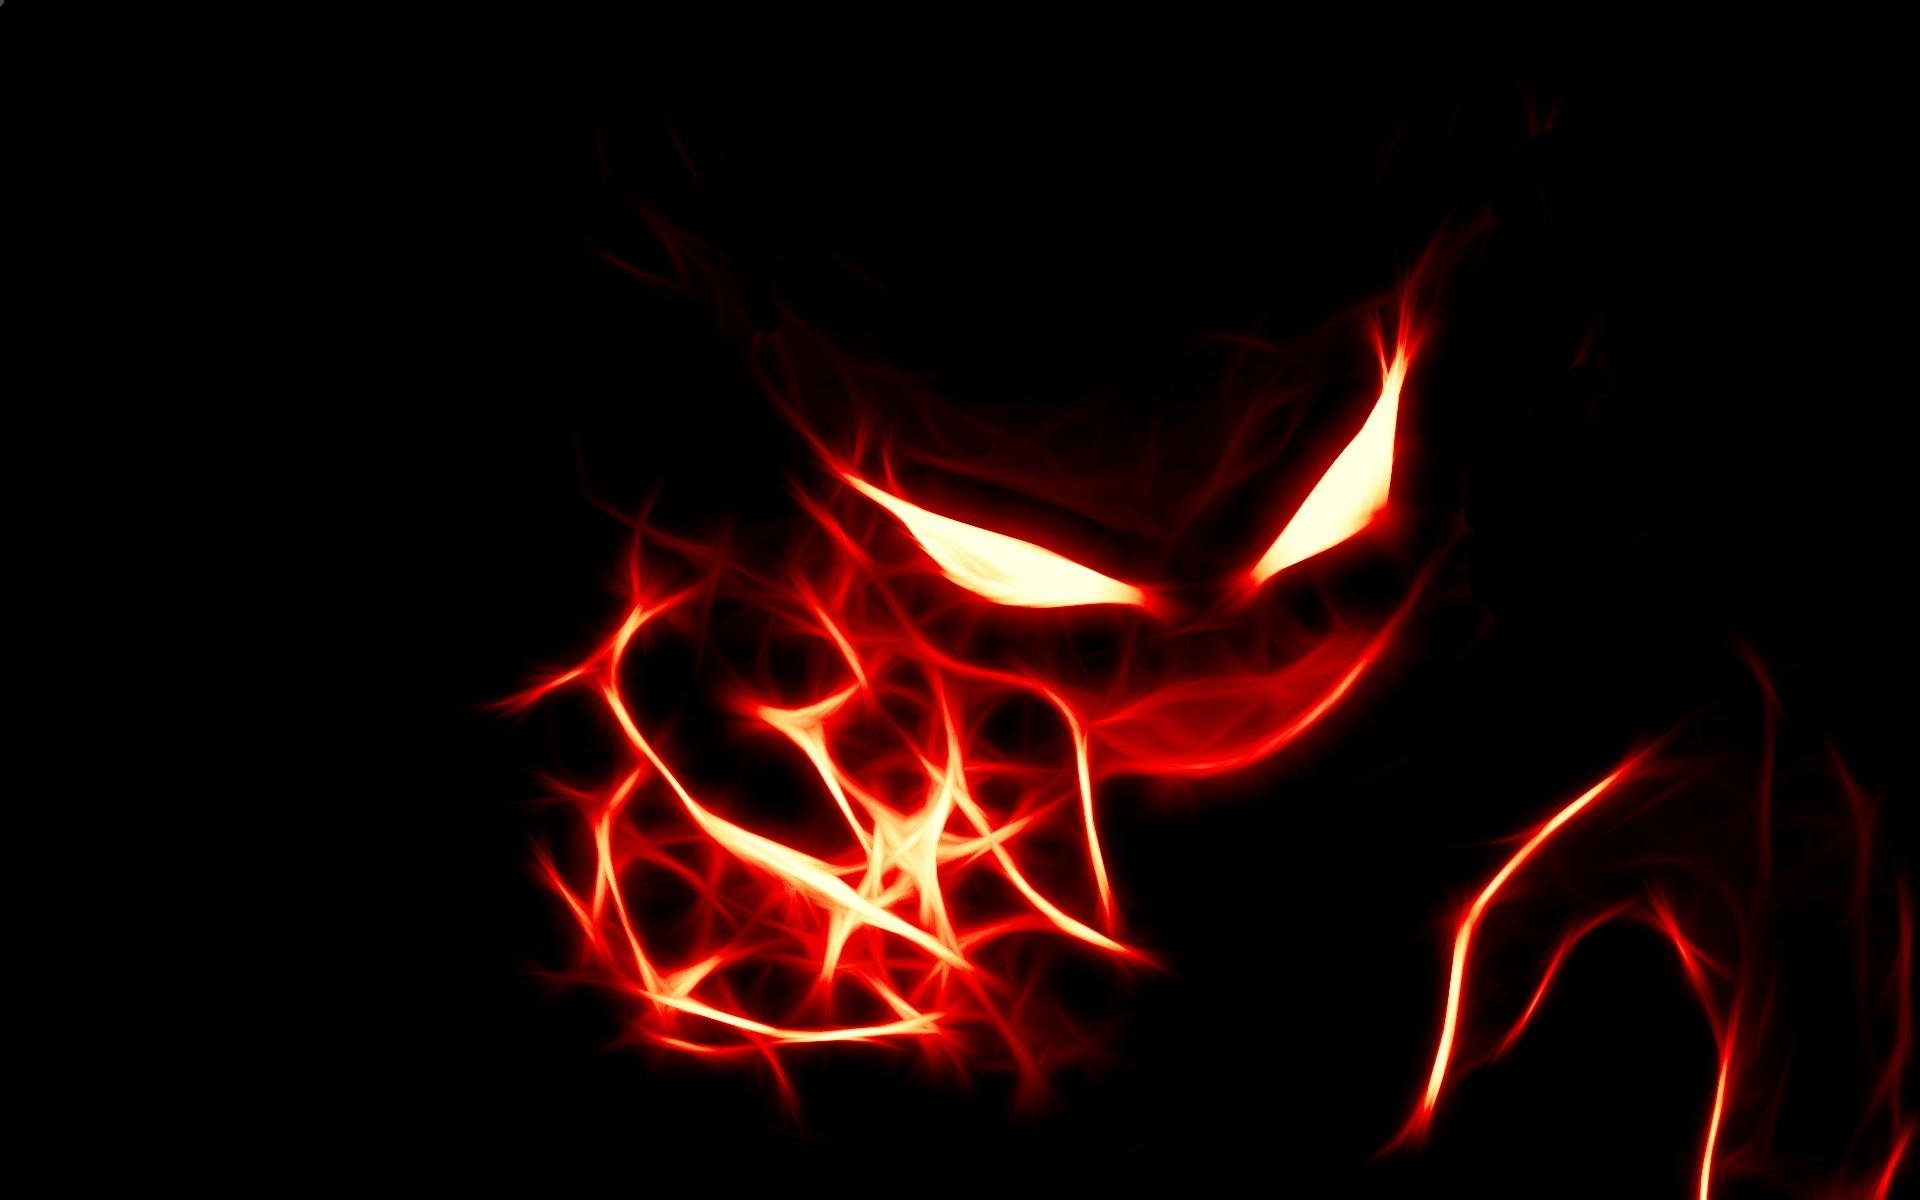 Anime - Pokemon  Haunter (Pokémon) Pokémon Ghost Pokémon Wallpaper